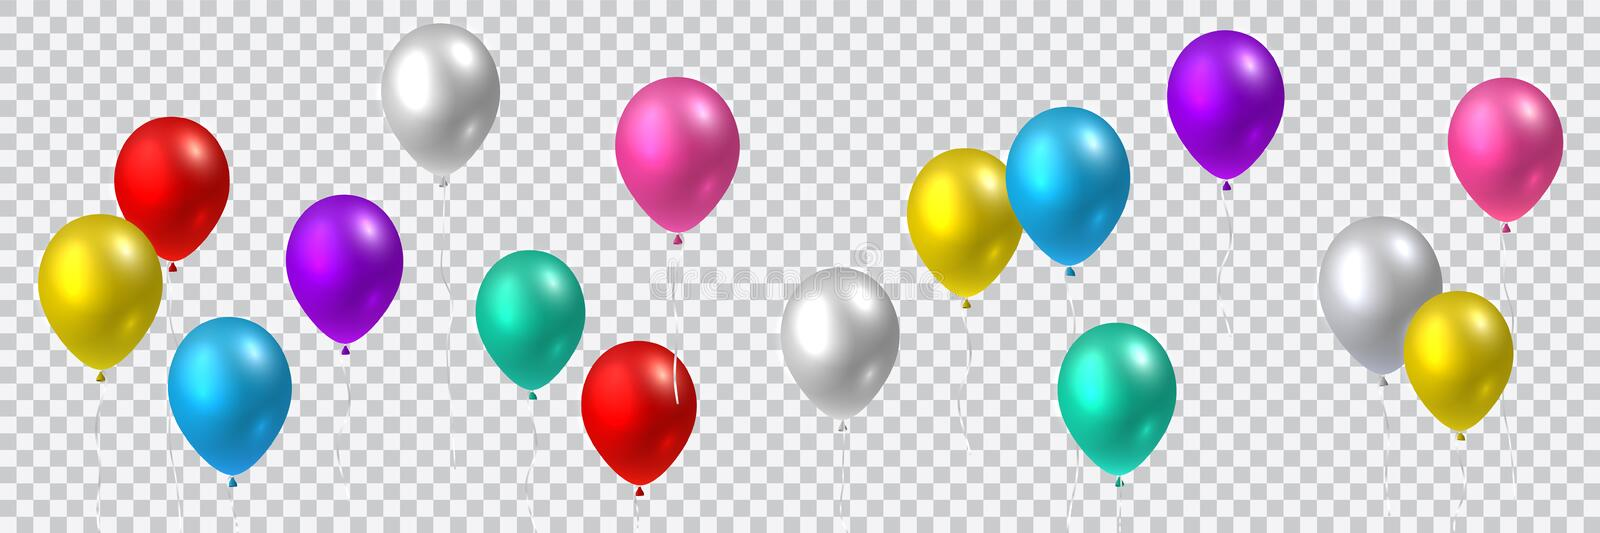 Beautiful colorful realistic seamless vector of colorful flying party balloons stock illustration